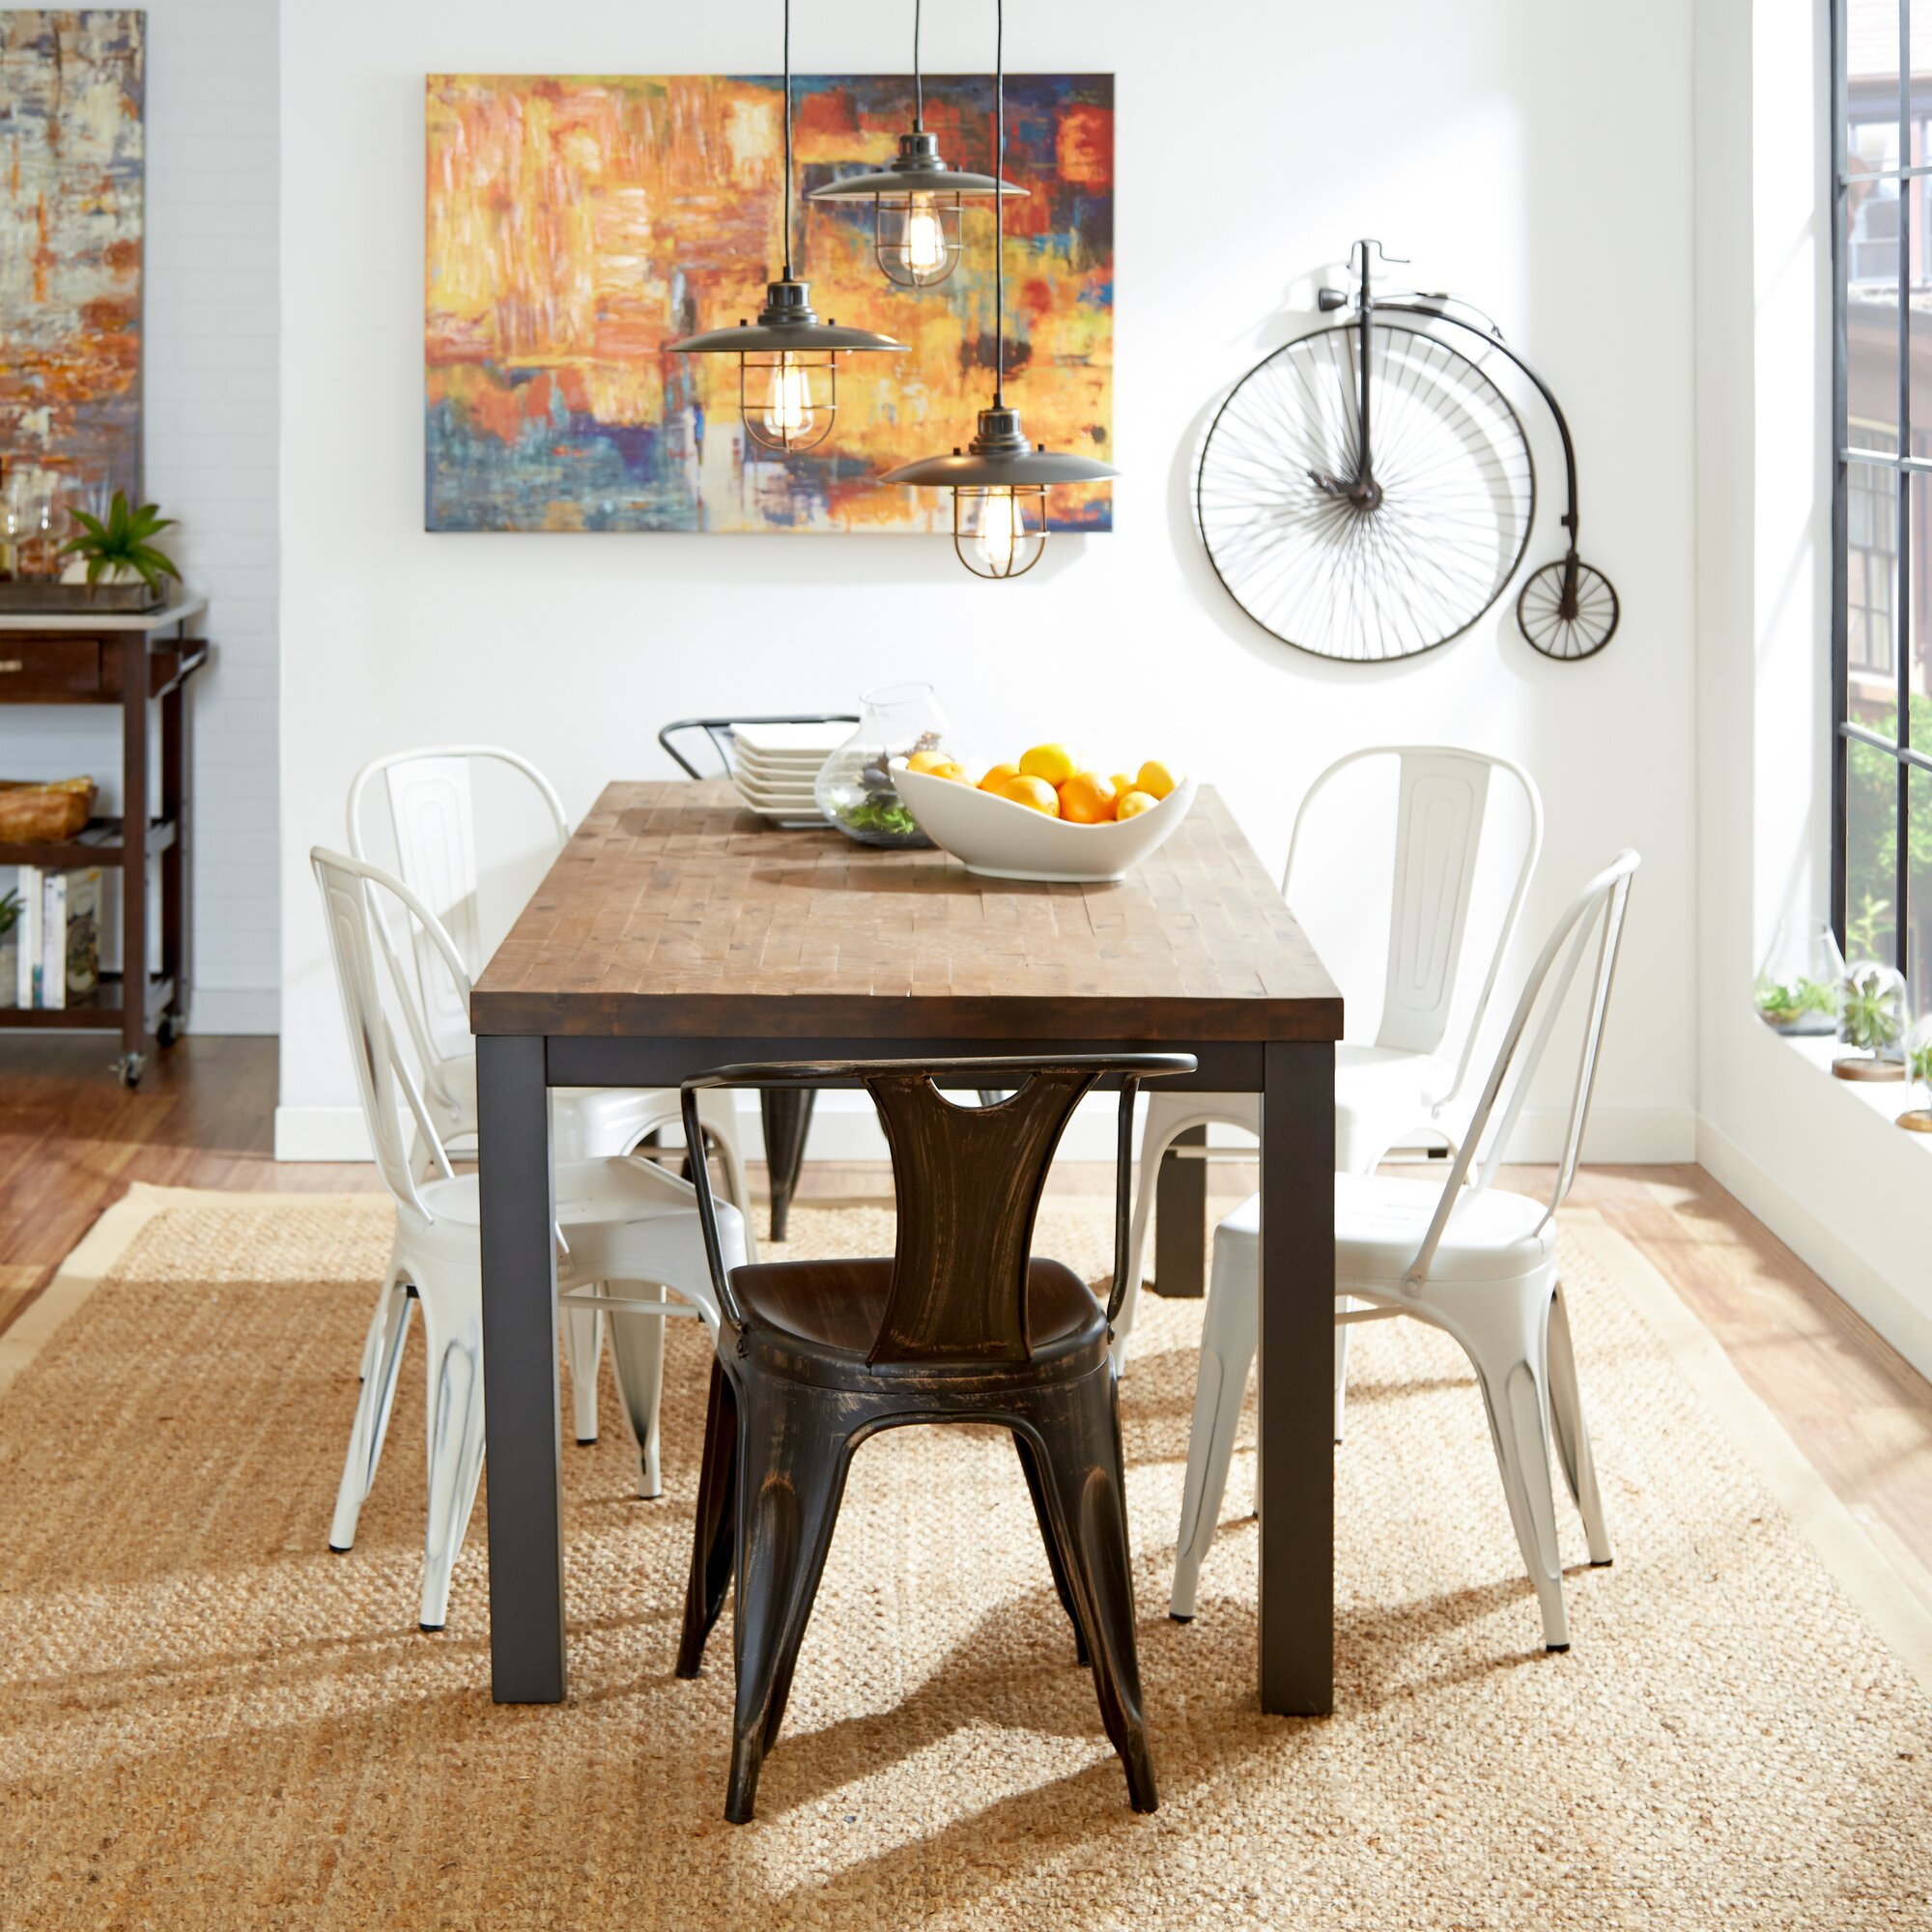 The Foundry Ii Cafe Rollins Dining Table Art Furniture: Leo Dining Table & Reviews